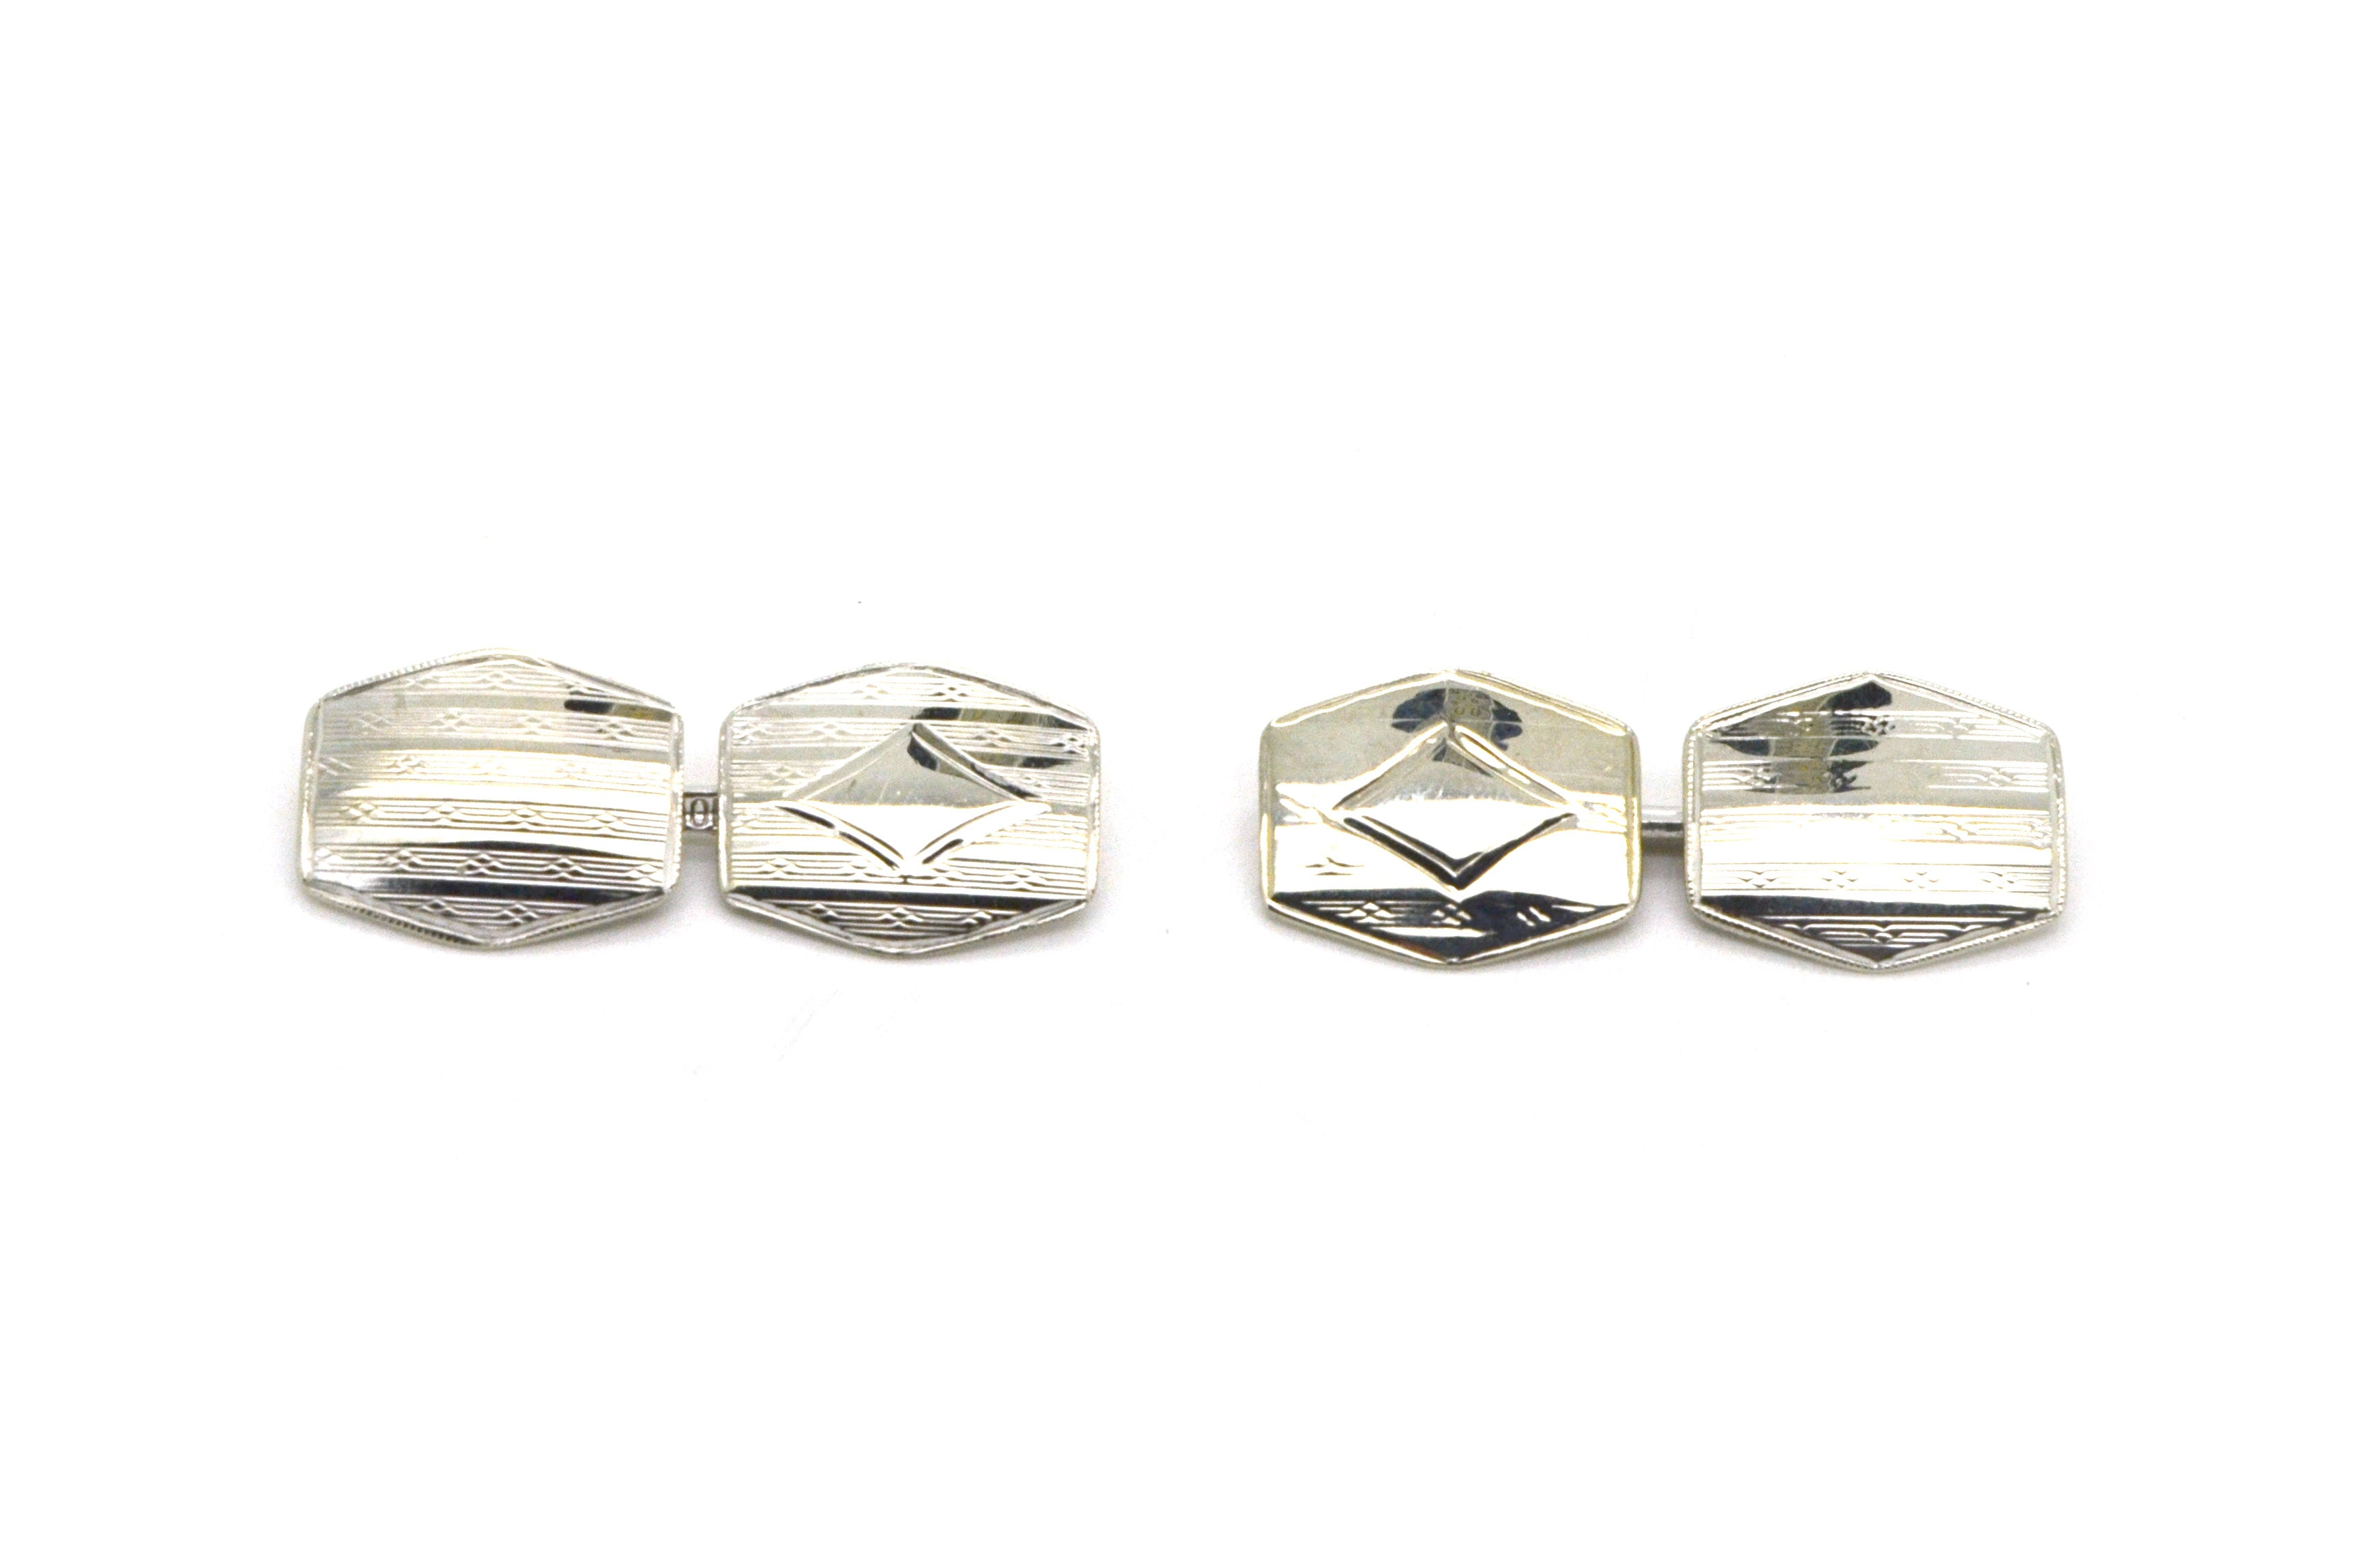 Vintage 10k White Gold Cufflinks with Engraved Design on Each Side - 2.2 dwt